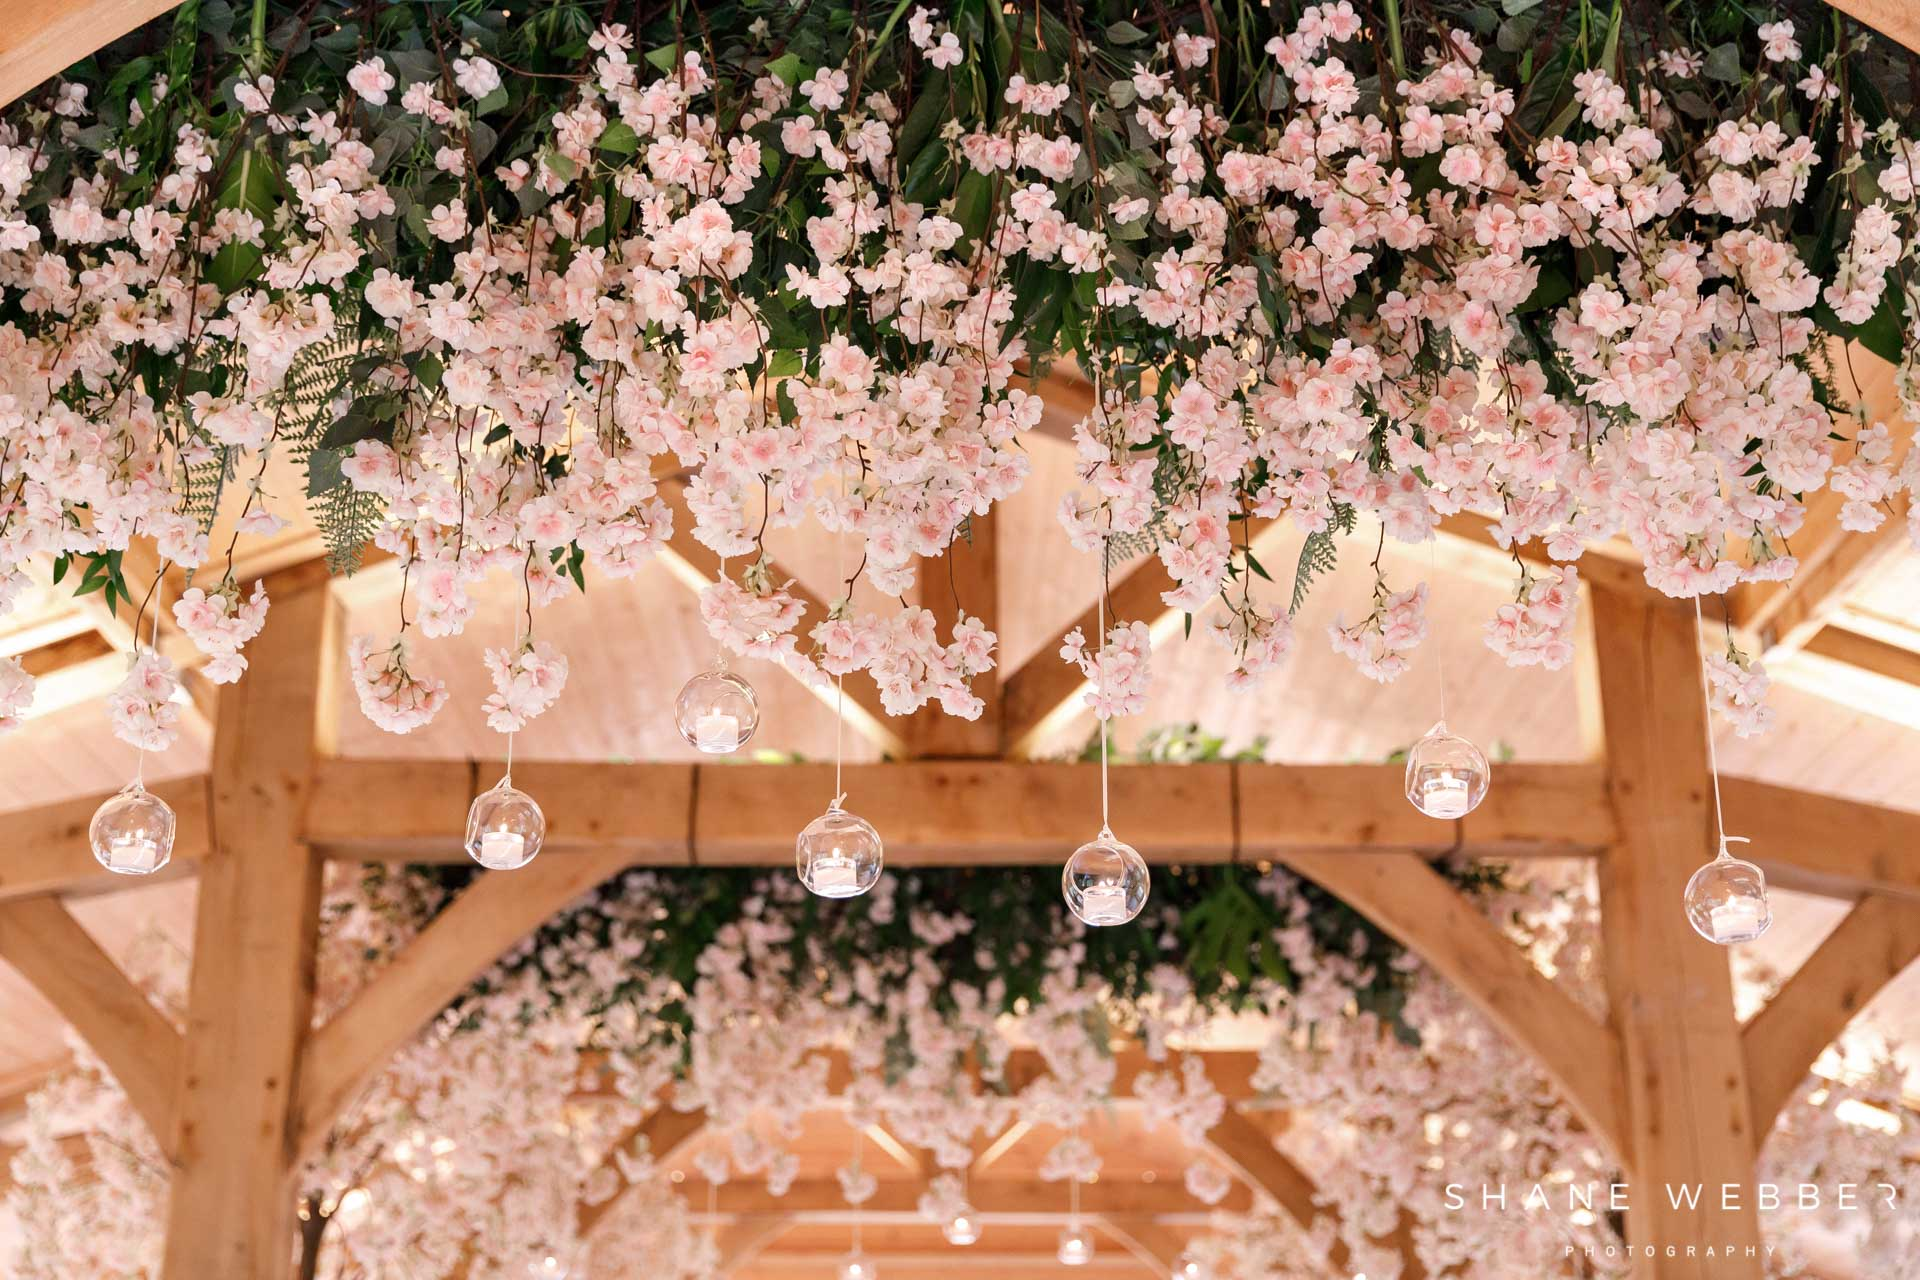 Red Floral Architecture flowers at Colshaw Hall wedding